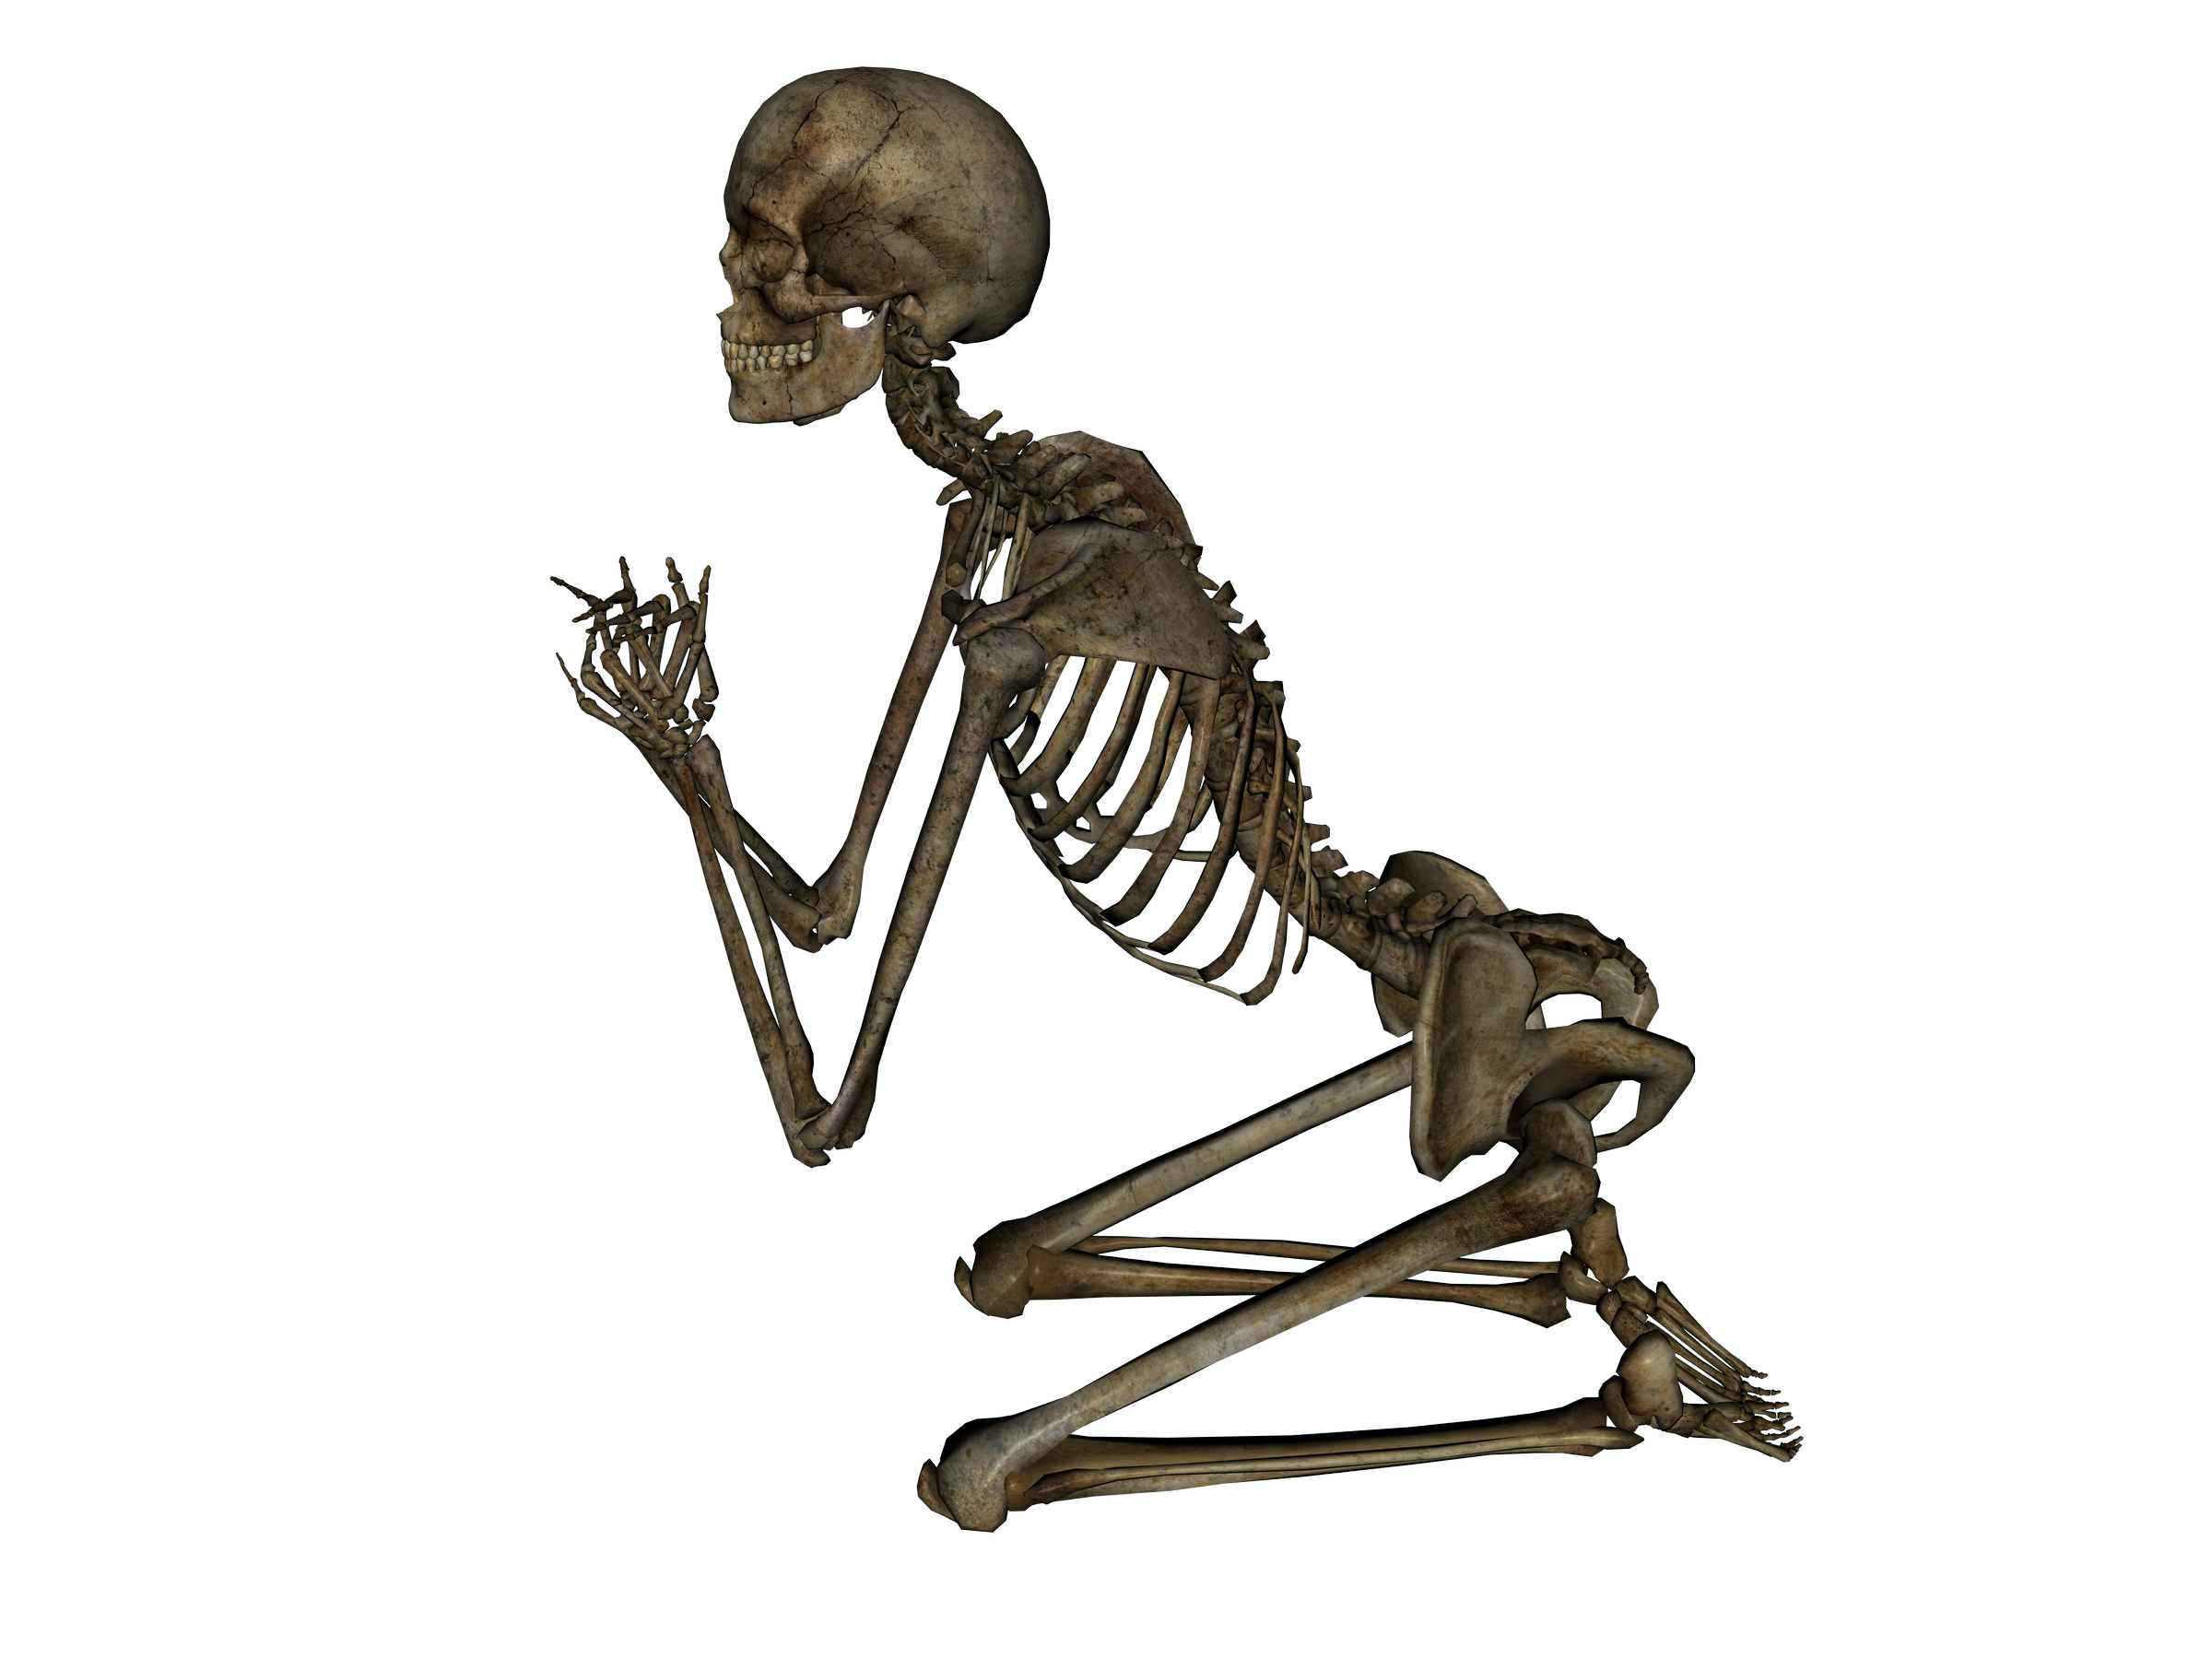 Skeleton PNG image - Skeleton HD PNG - Please PNG HD Images